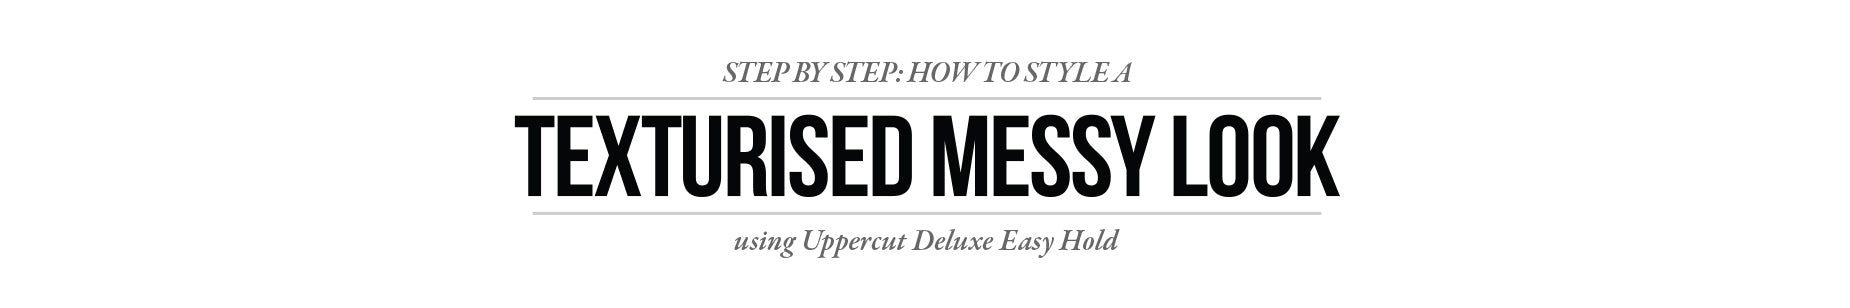 How to Style: Texturised Messy Look